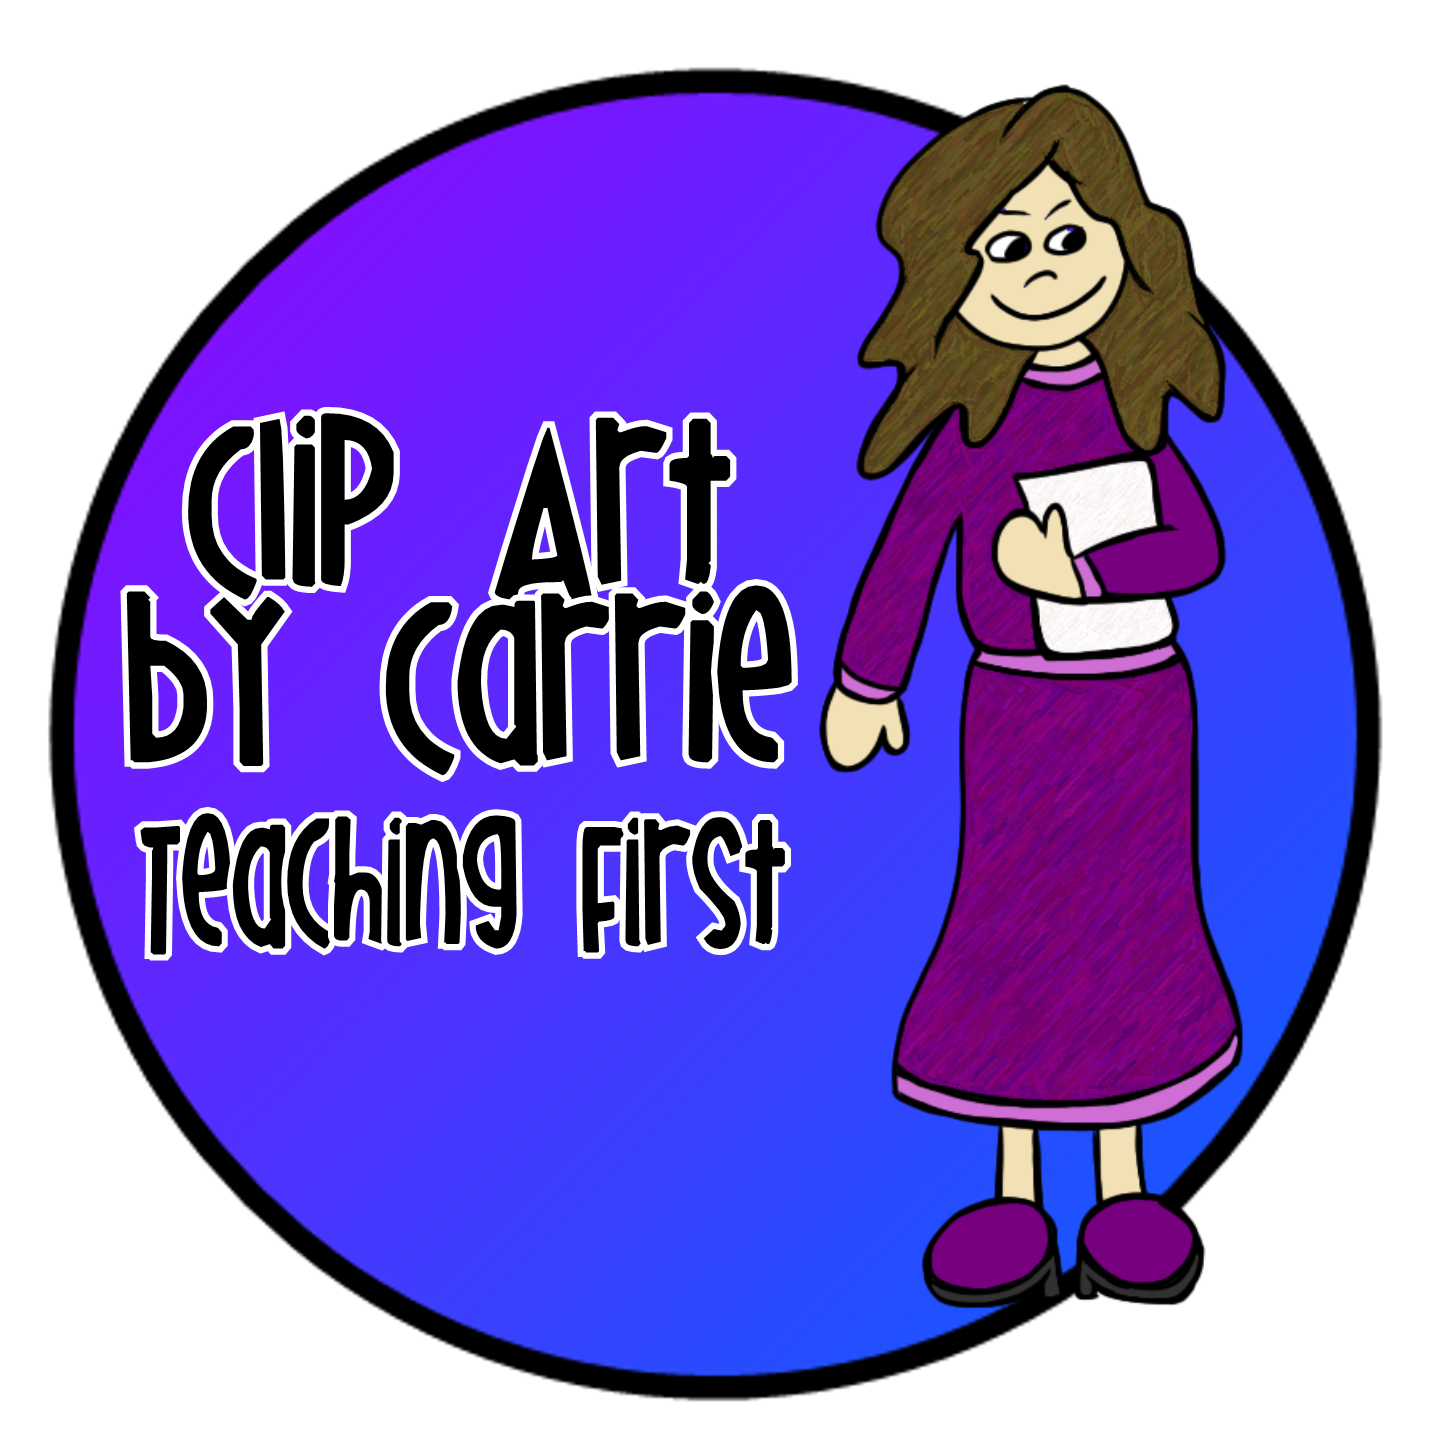 clip art by carrie teaching first clip art doodles rh ccteachfirst blogspot com